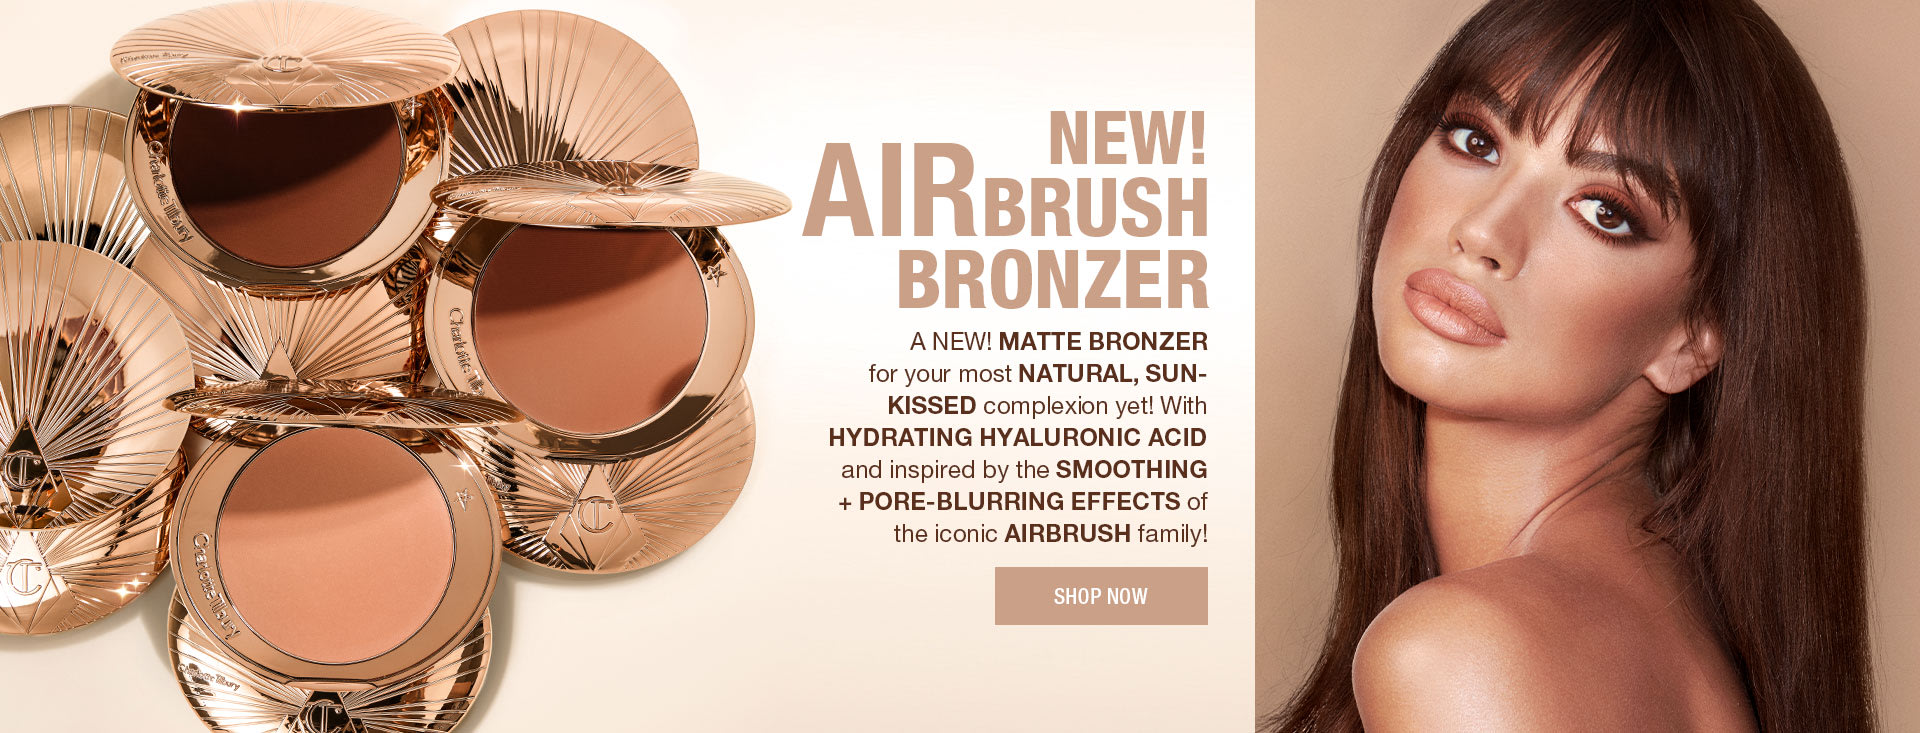 Airbrush Bronzer Launch